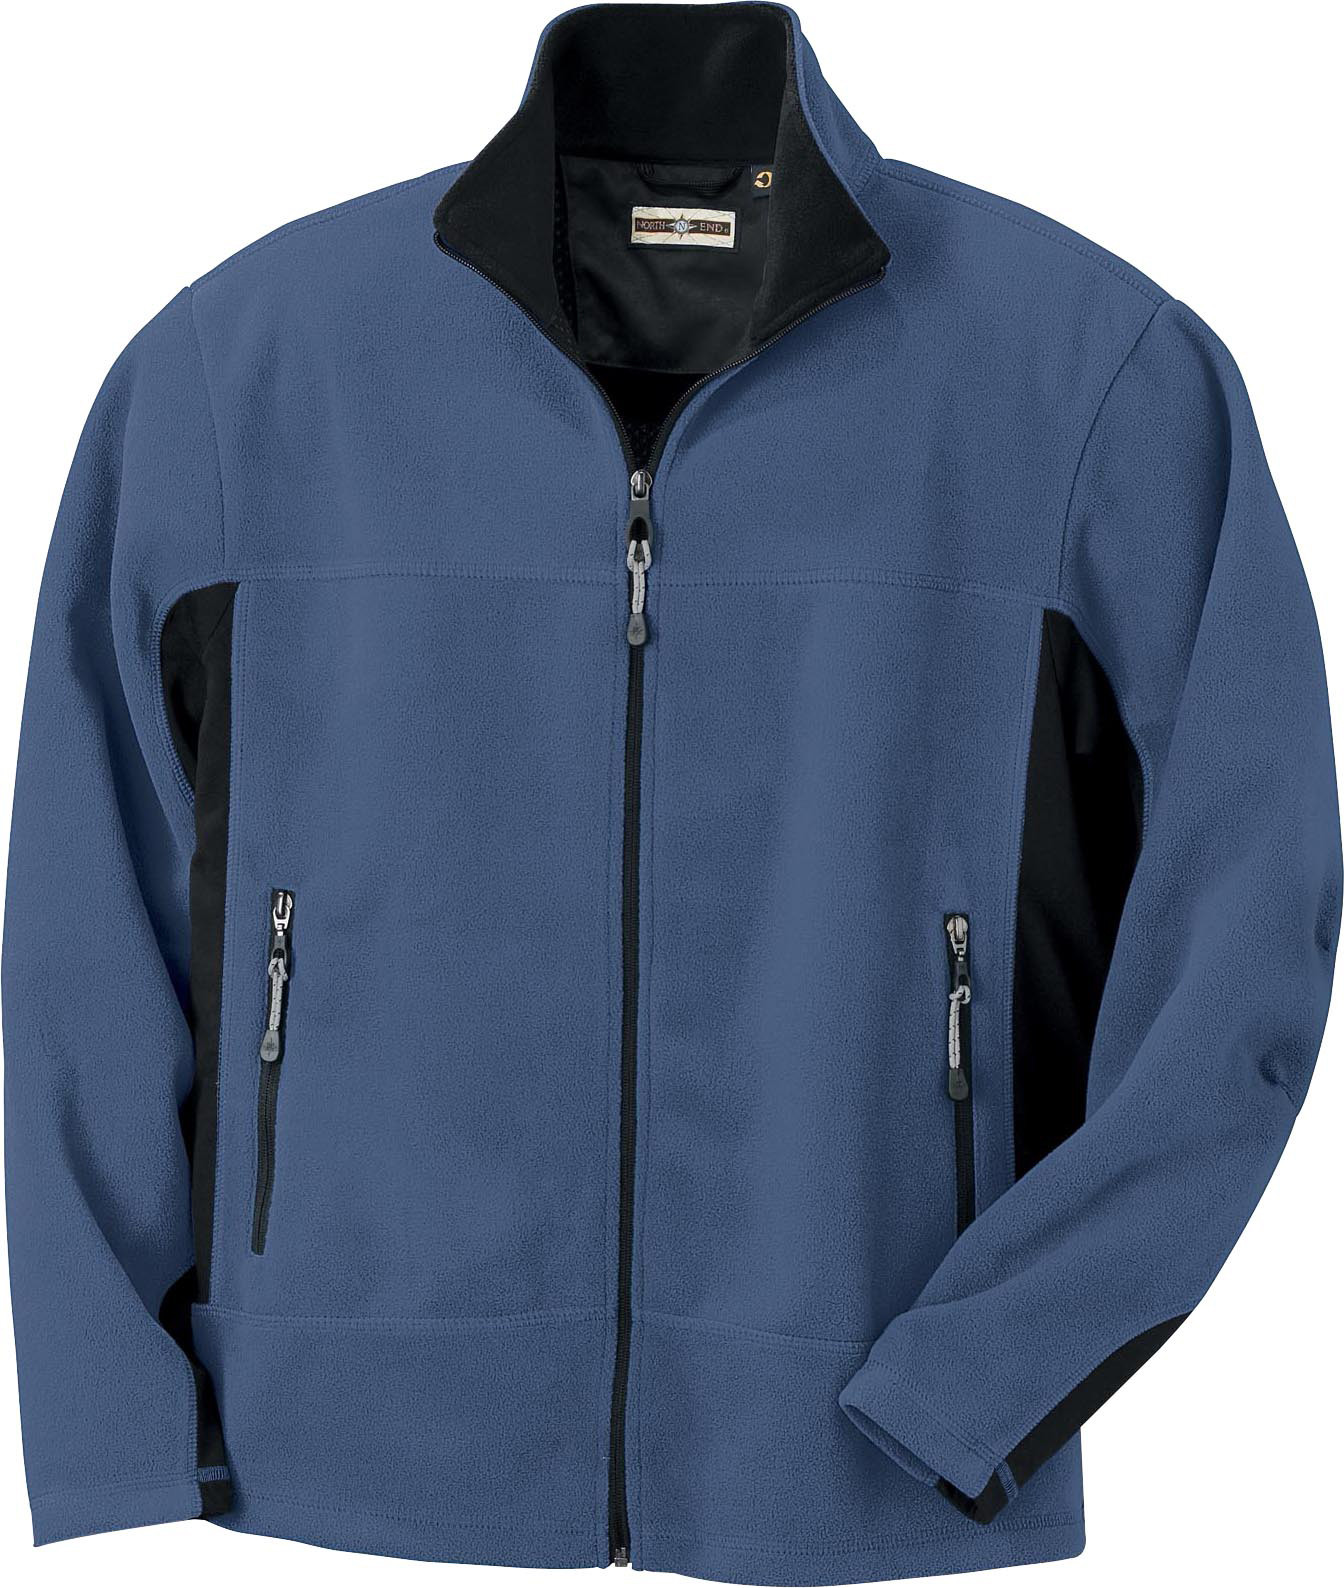 Ash City Bonded Fleece 88105 - Men's Fleece Bonded To ...